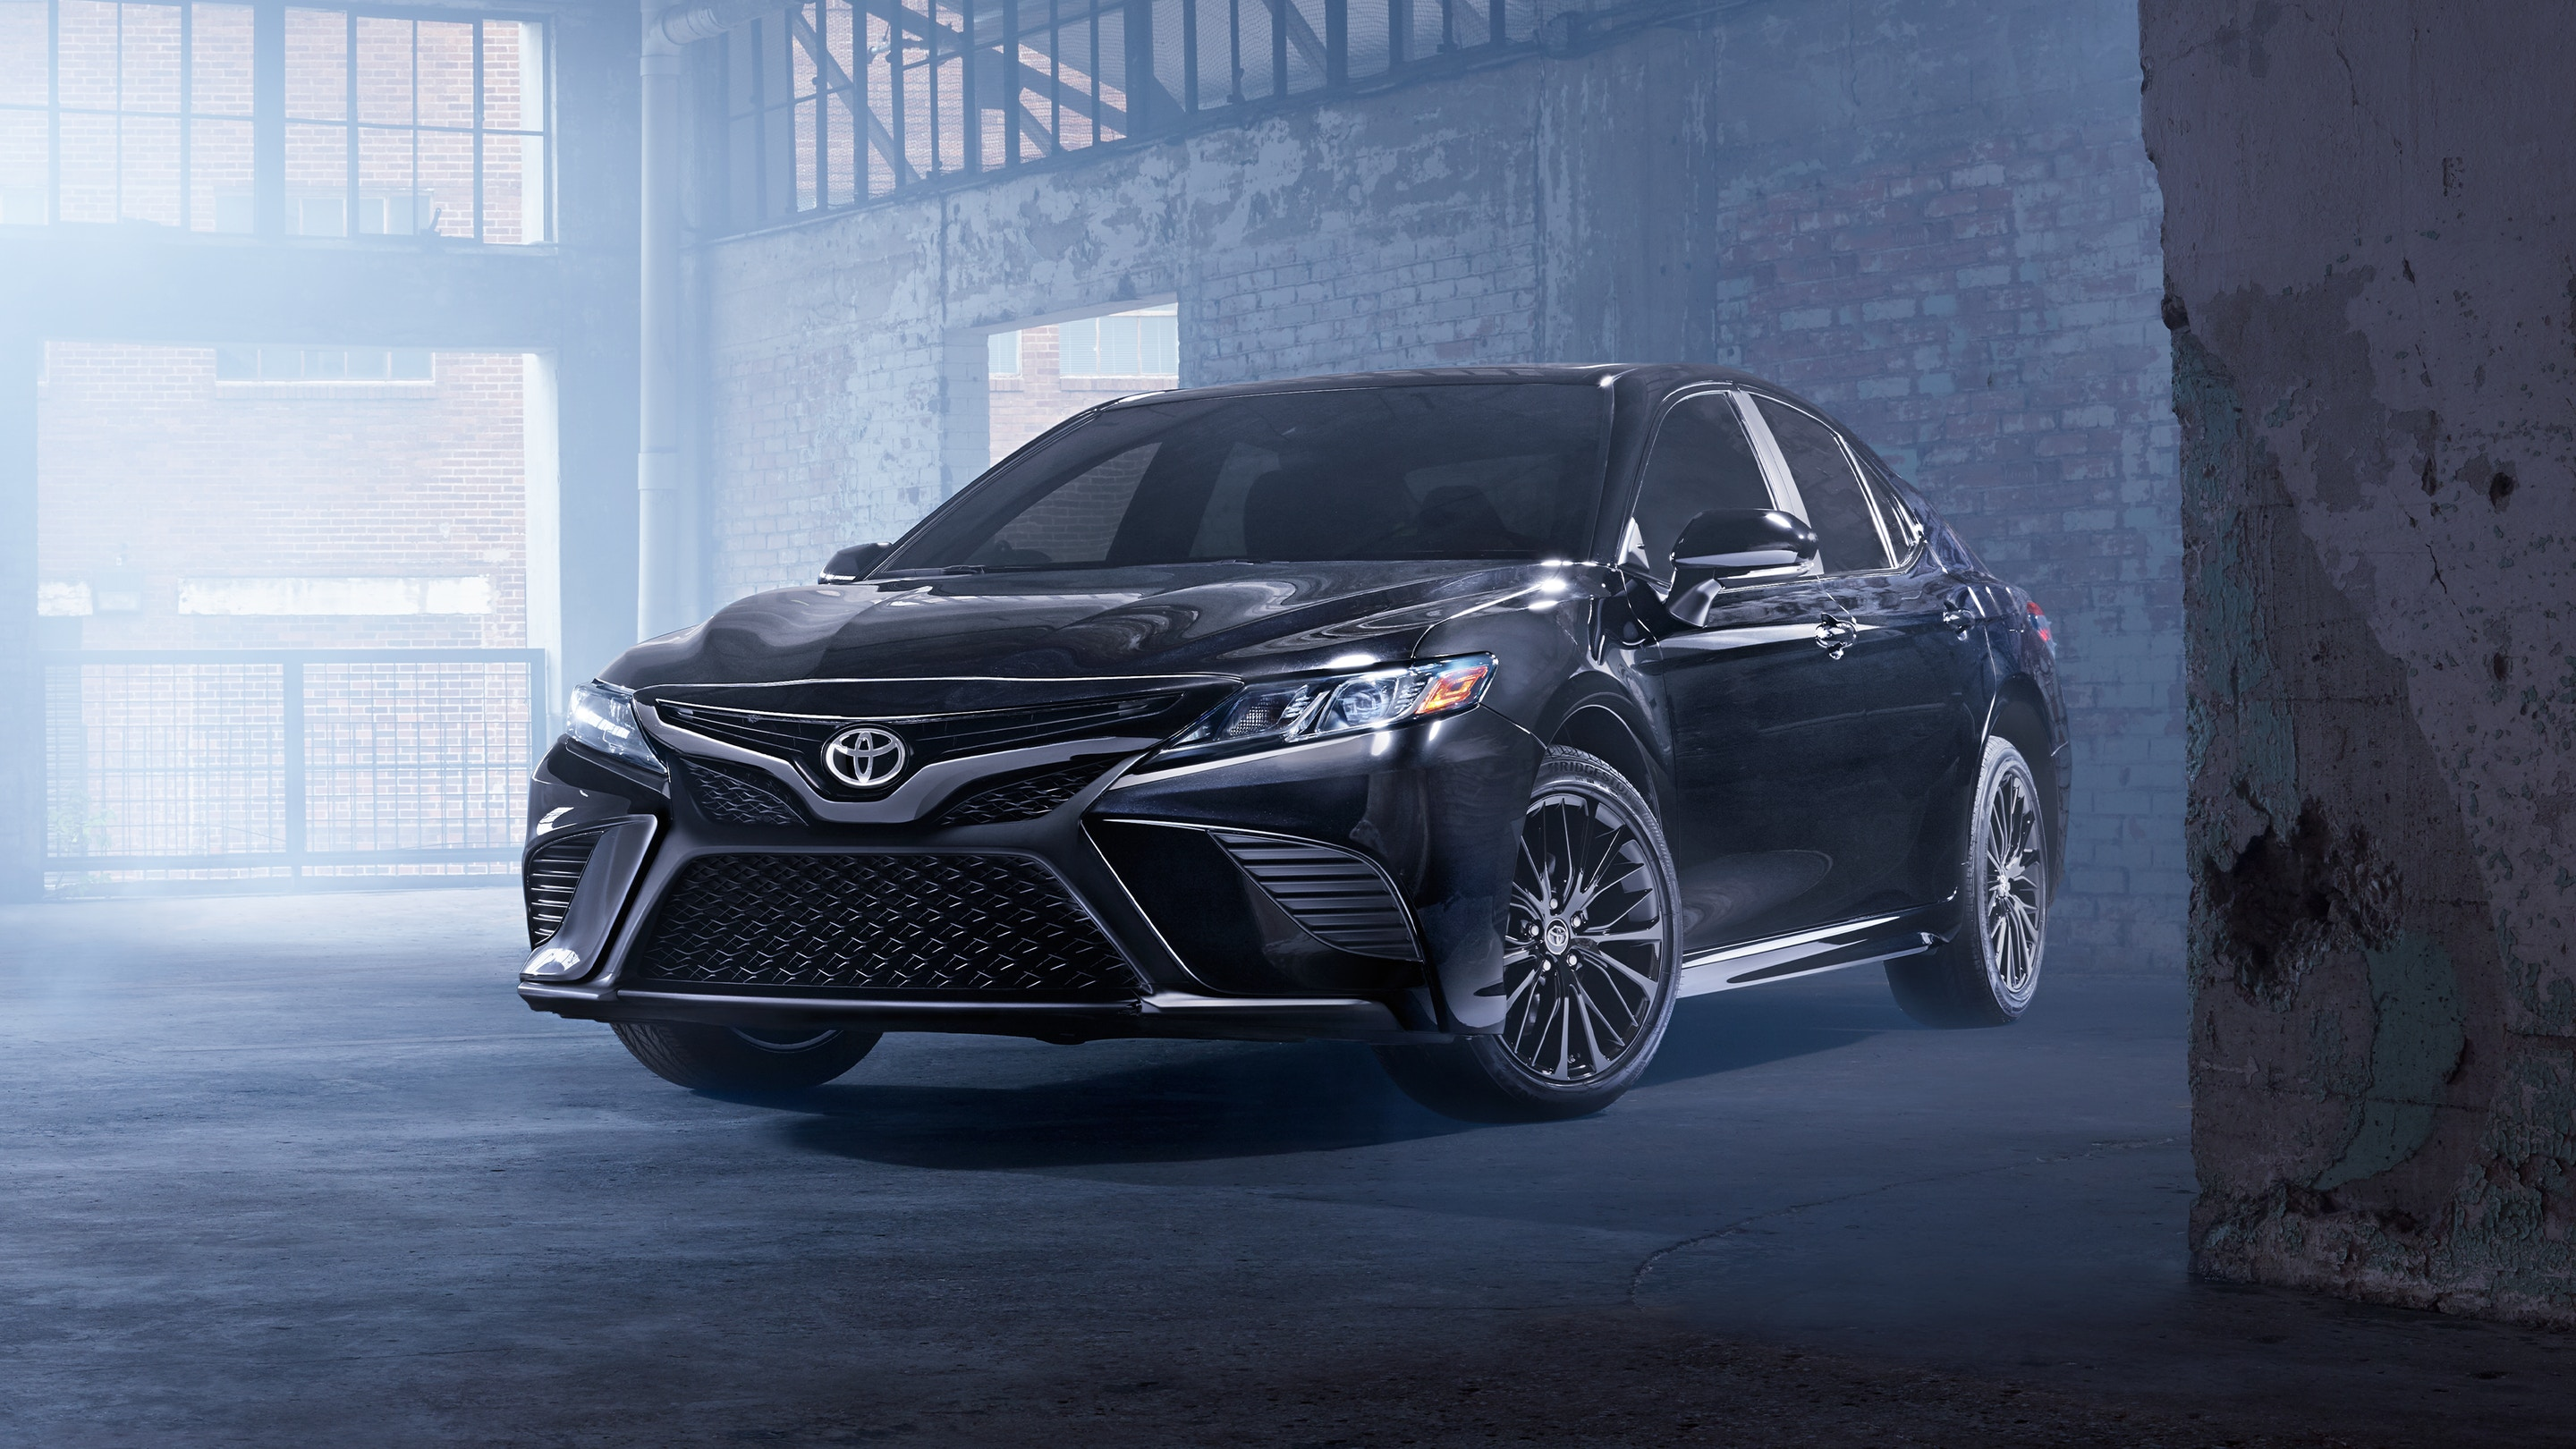 2020 Toyota Camry Front View Black Exterior Picture